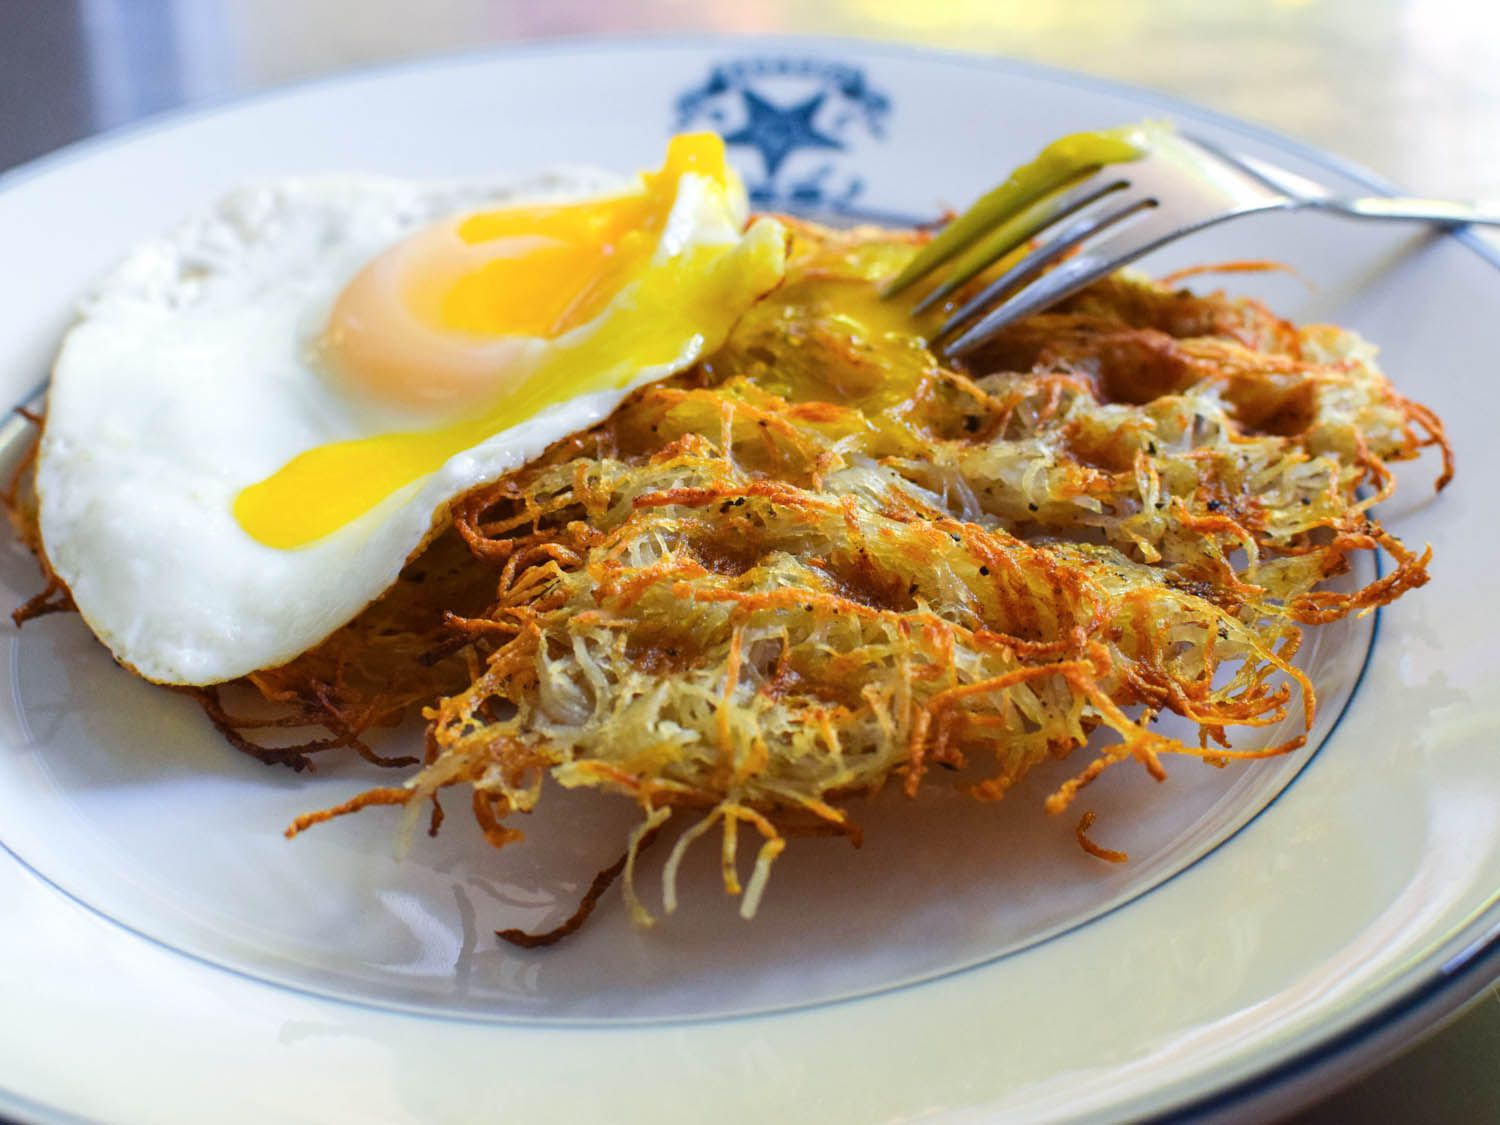 Waffle-Iron Hash Browns with a sunny side up egg on a plate.